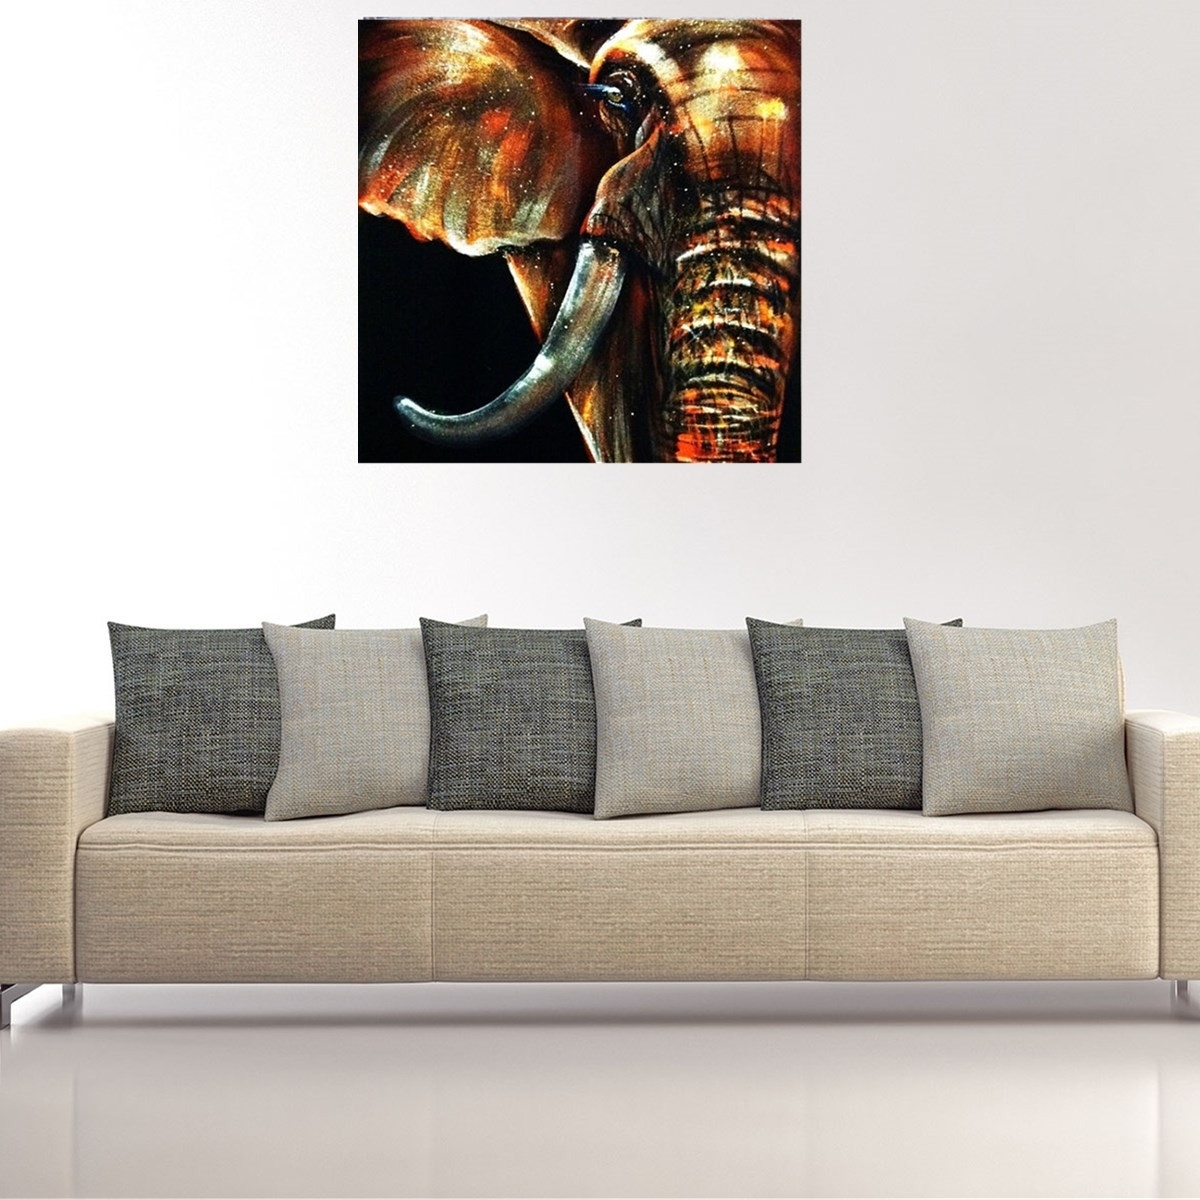 50X50Cm Modern Abstract Huge Elephant Wall Art Decor Oil Painting Throughout Current Abstract Elephant Wall Art (View 3 of 20)